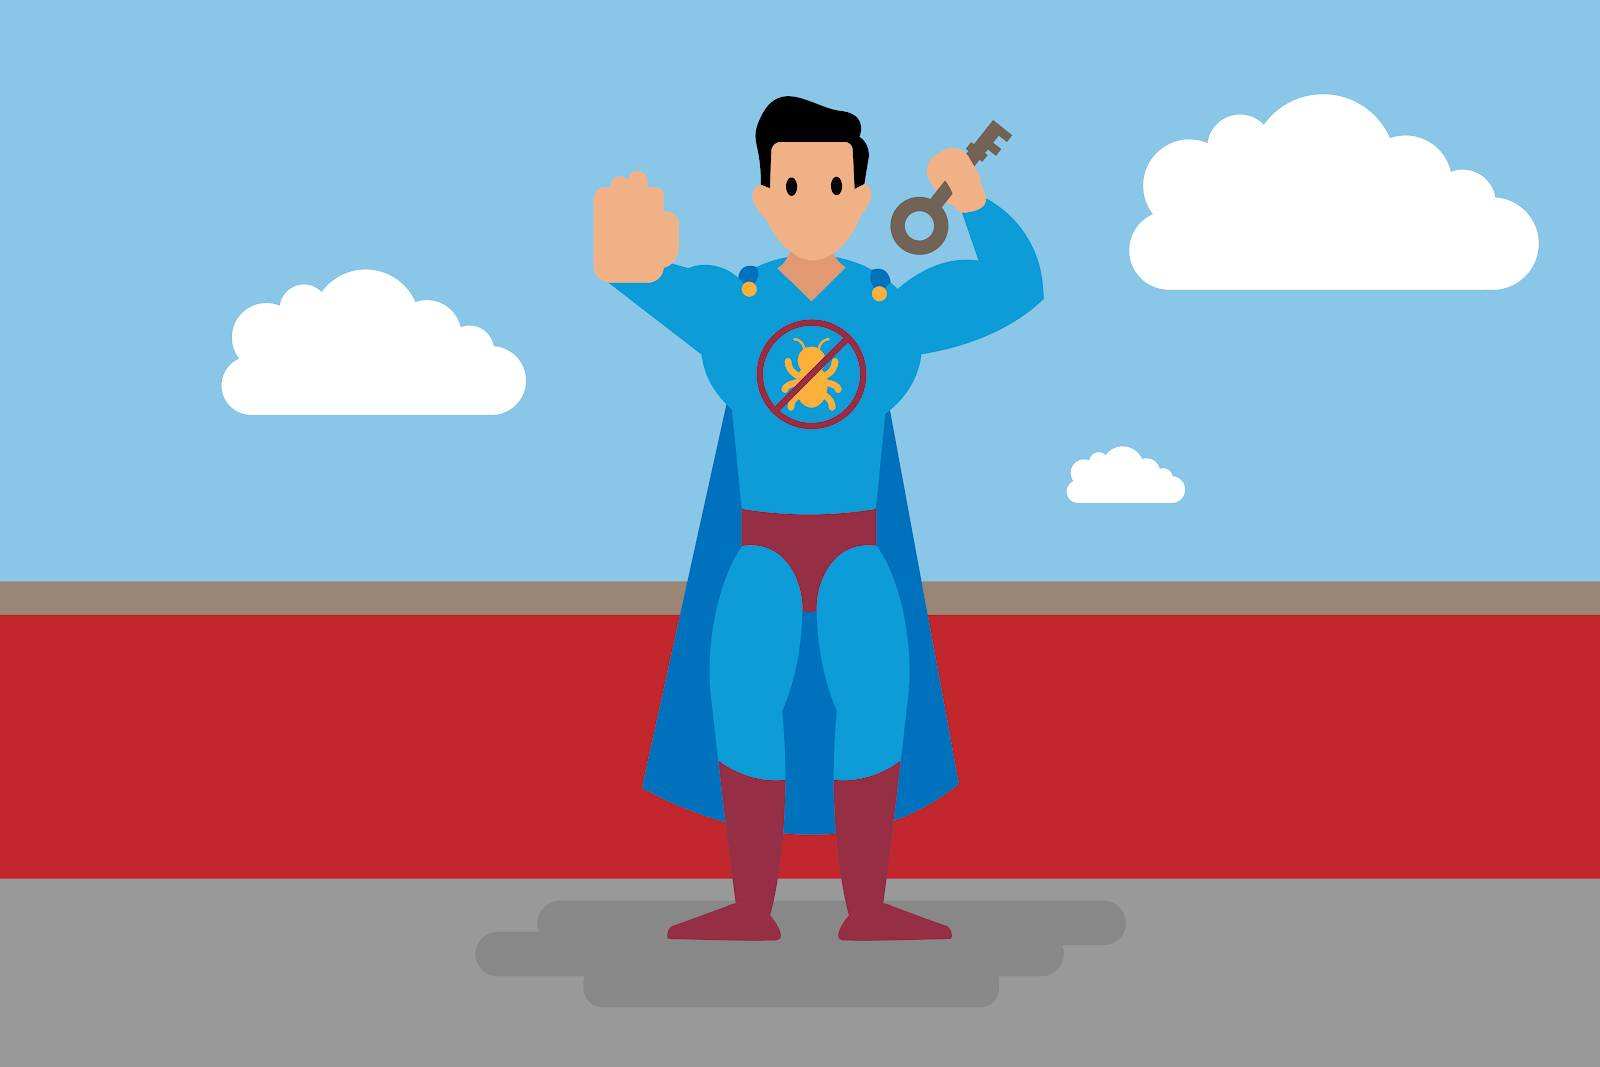 A superhero is holding the key to protecting an organization from cybersecurity threats.